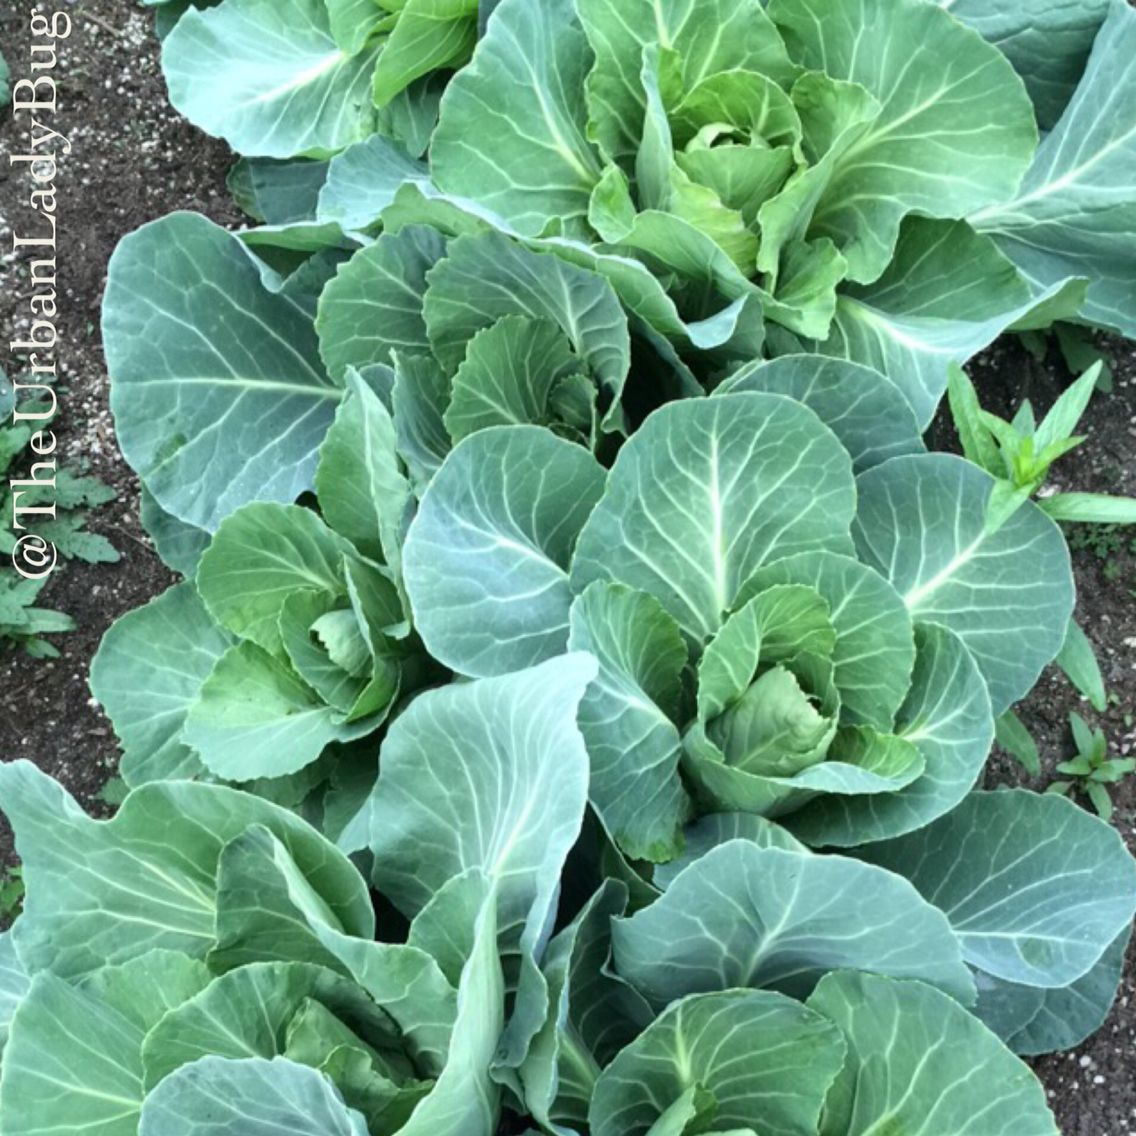 Homegrown Organic Cabbage Heads Starting For Form (With